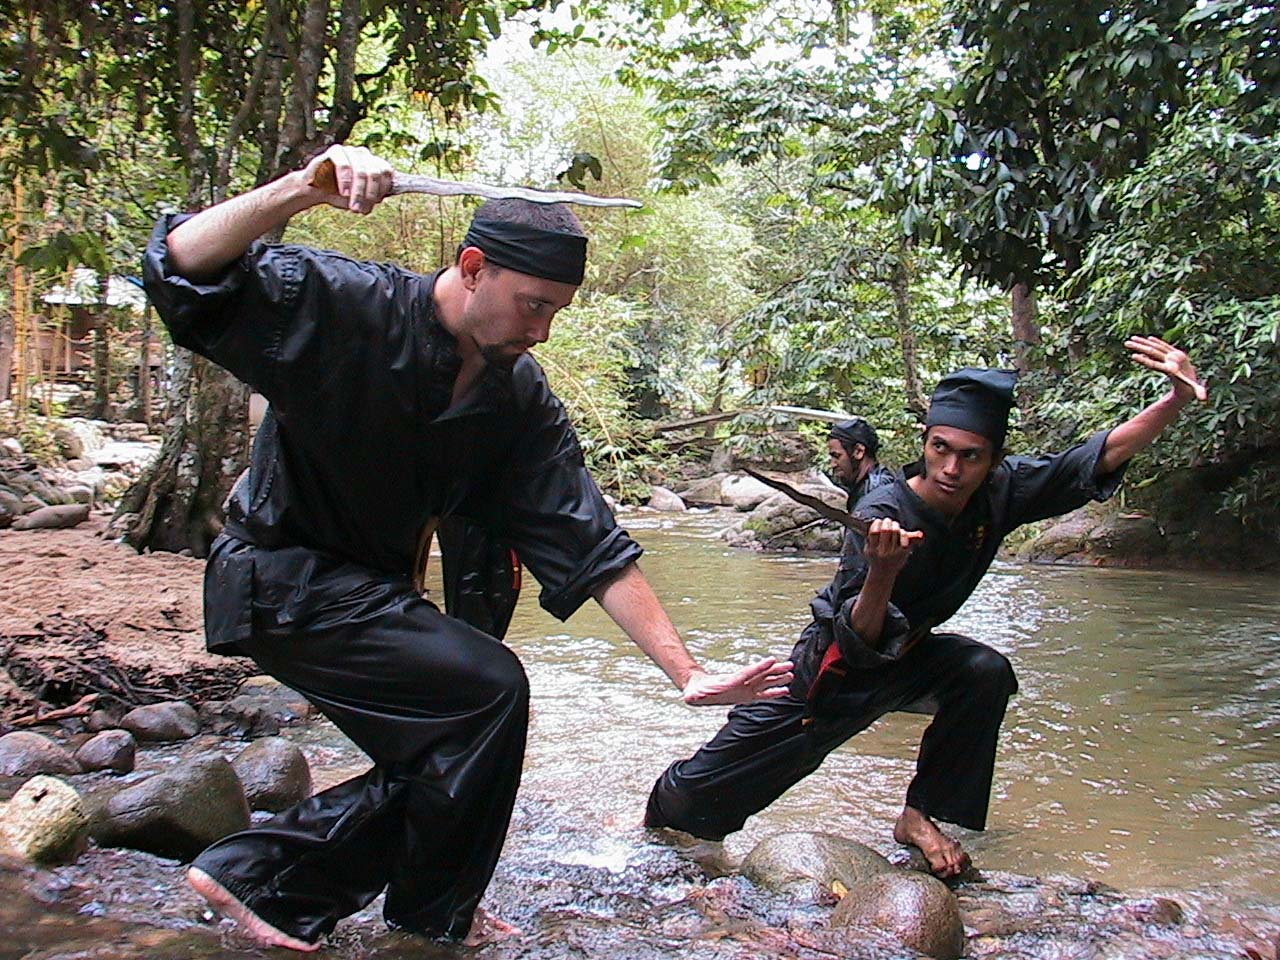 martial arts influence in indonesia essay The filipino martial tradition, its history, cultural perspective and technique, makes for a rich and fascinating story this is the first book to delve deeply into that legacy, examining the different schools of arnis and contributions made by leading arnisadores through history.